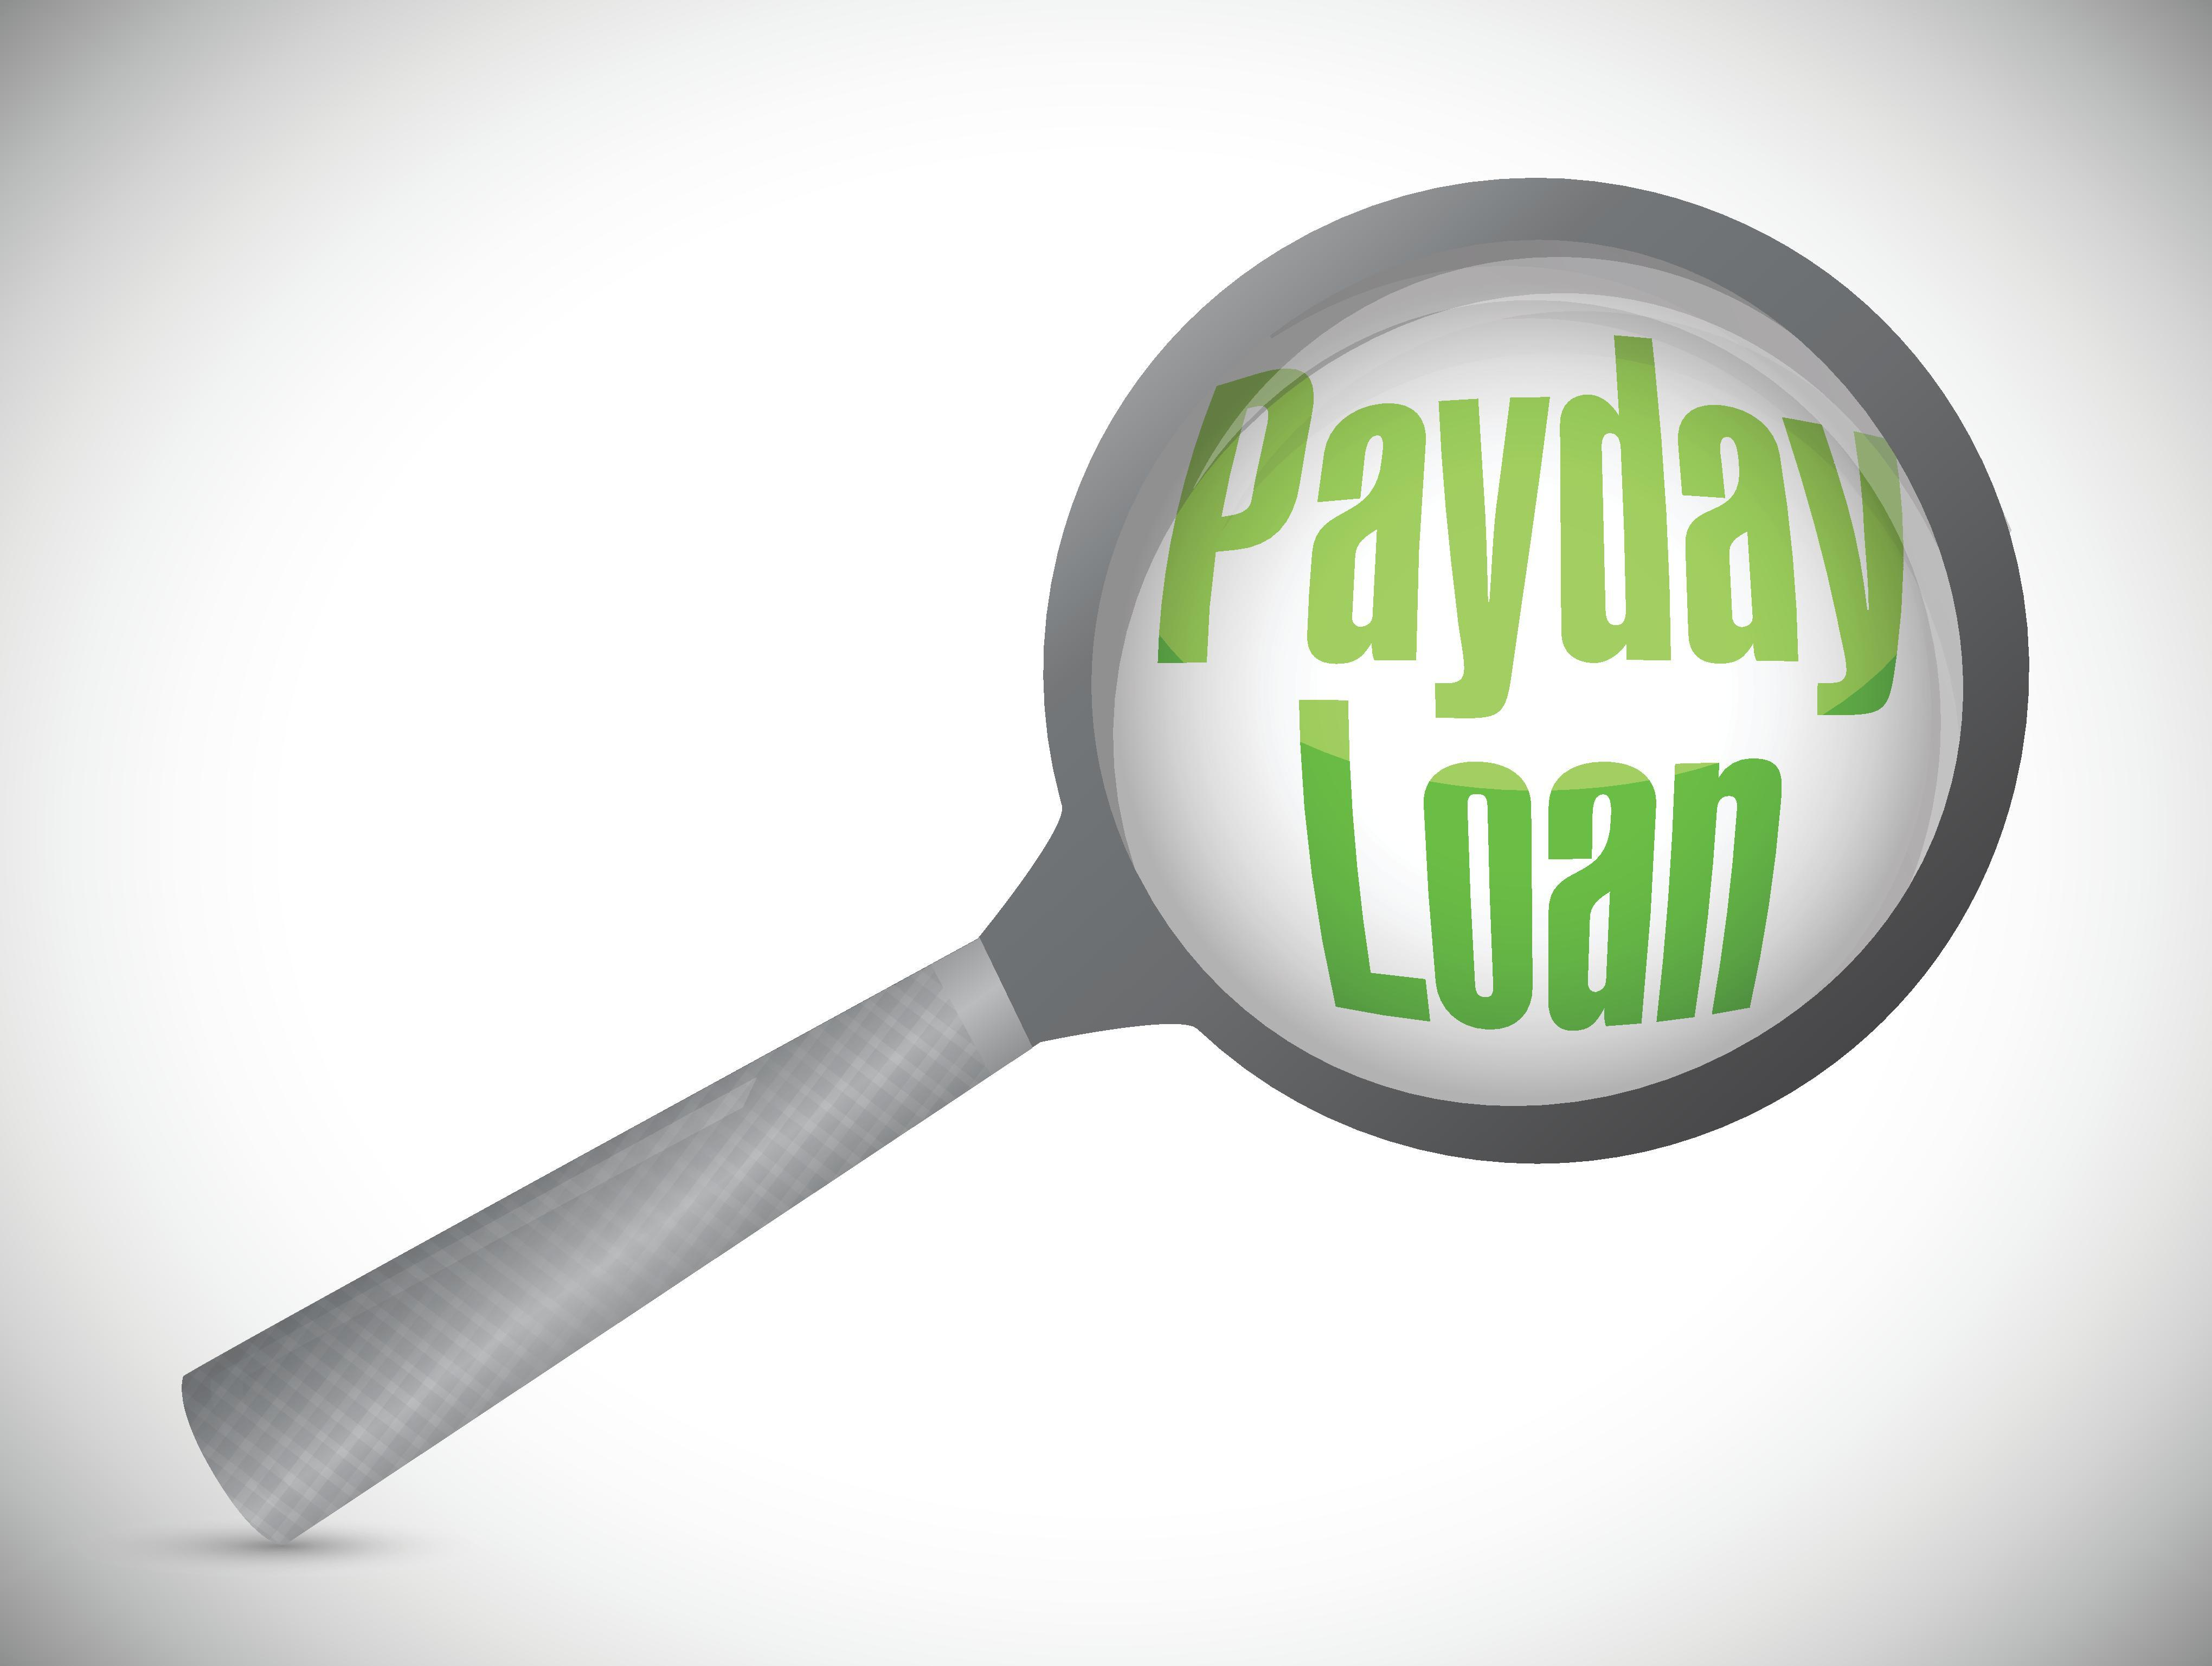 payday loan in minutes